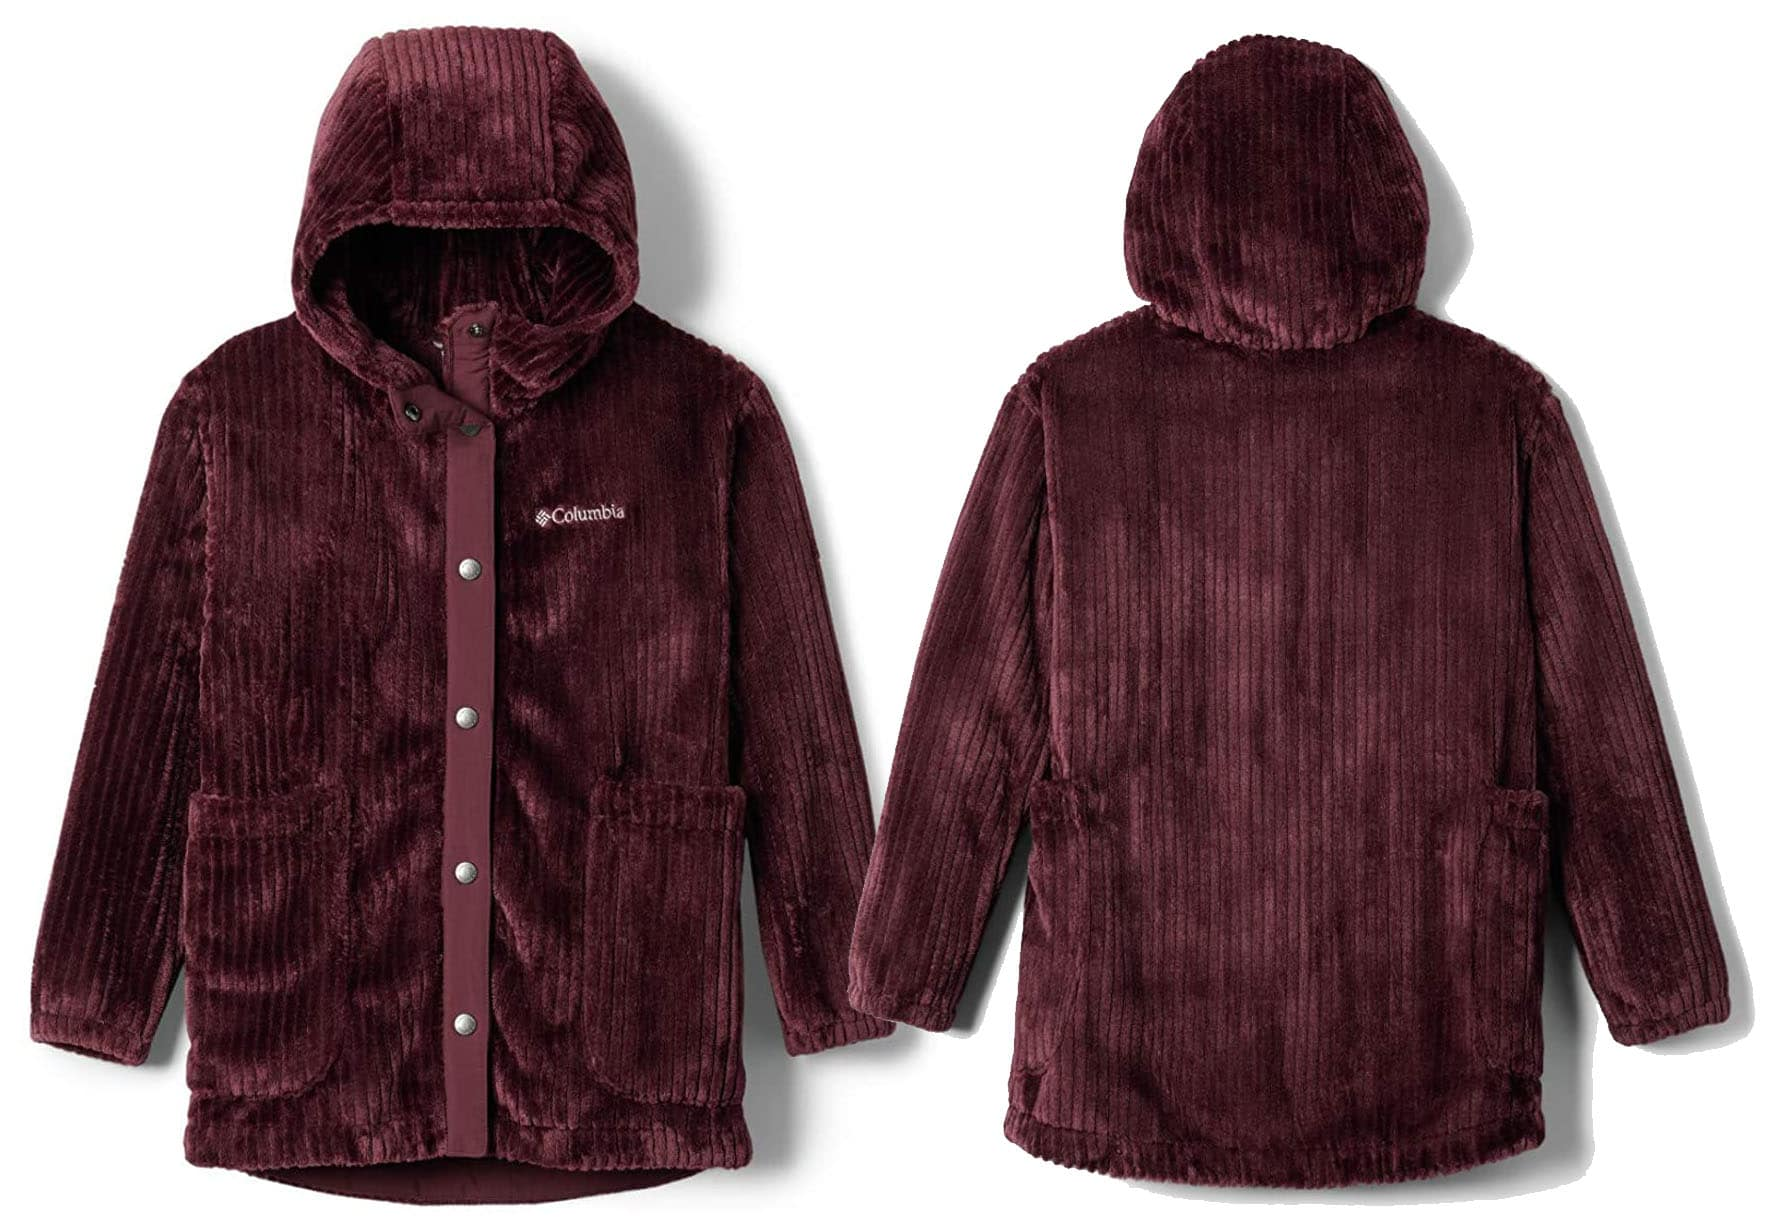 Pretty and comfy, the Fire Side jacket features velvety soft fleece inside and out